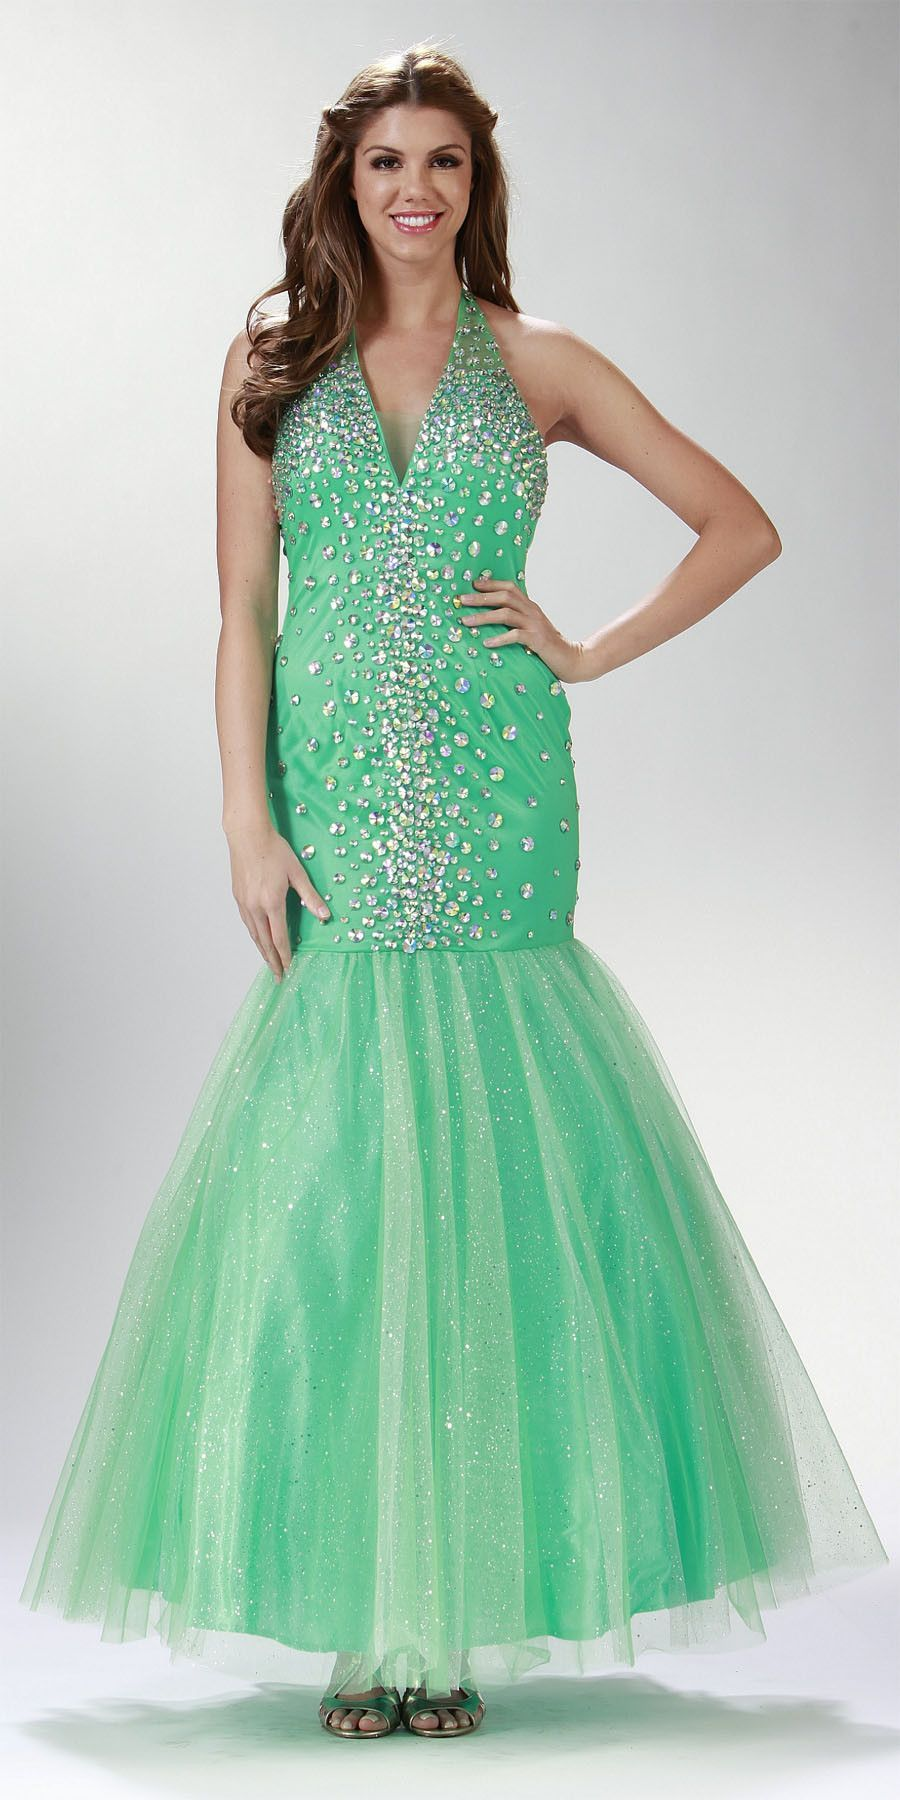 ON SPECIAL LIMITED STOCK - Rhinestone Studded Long Mint Green Trumpet Prom Dress